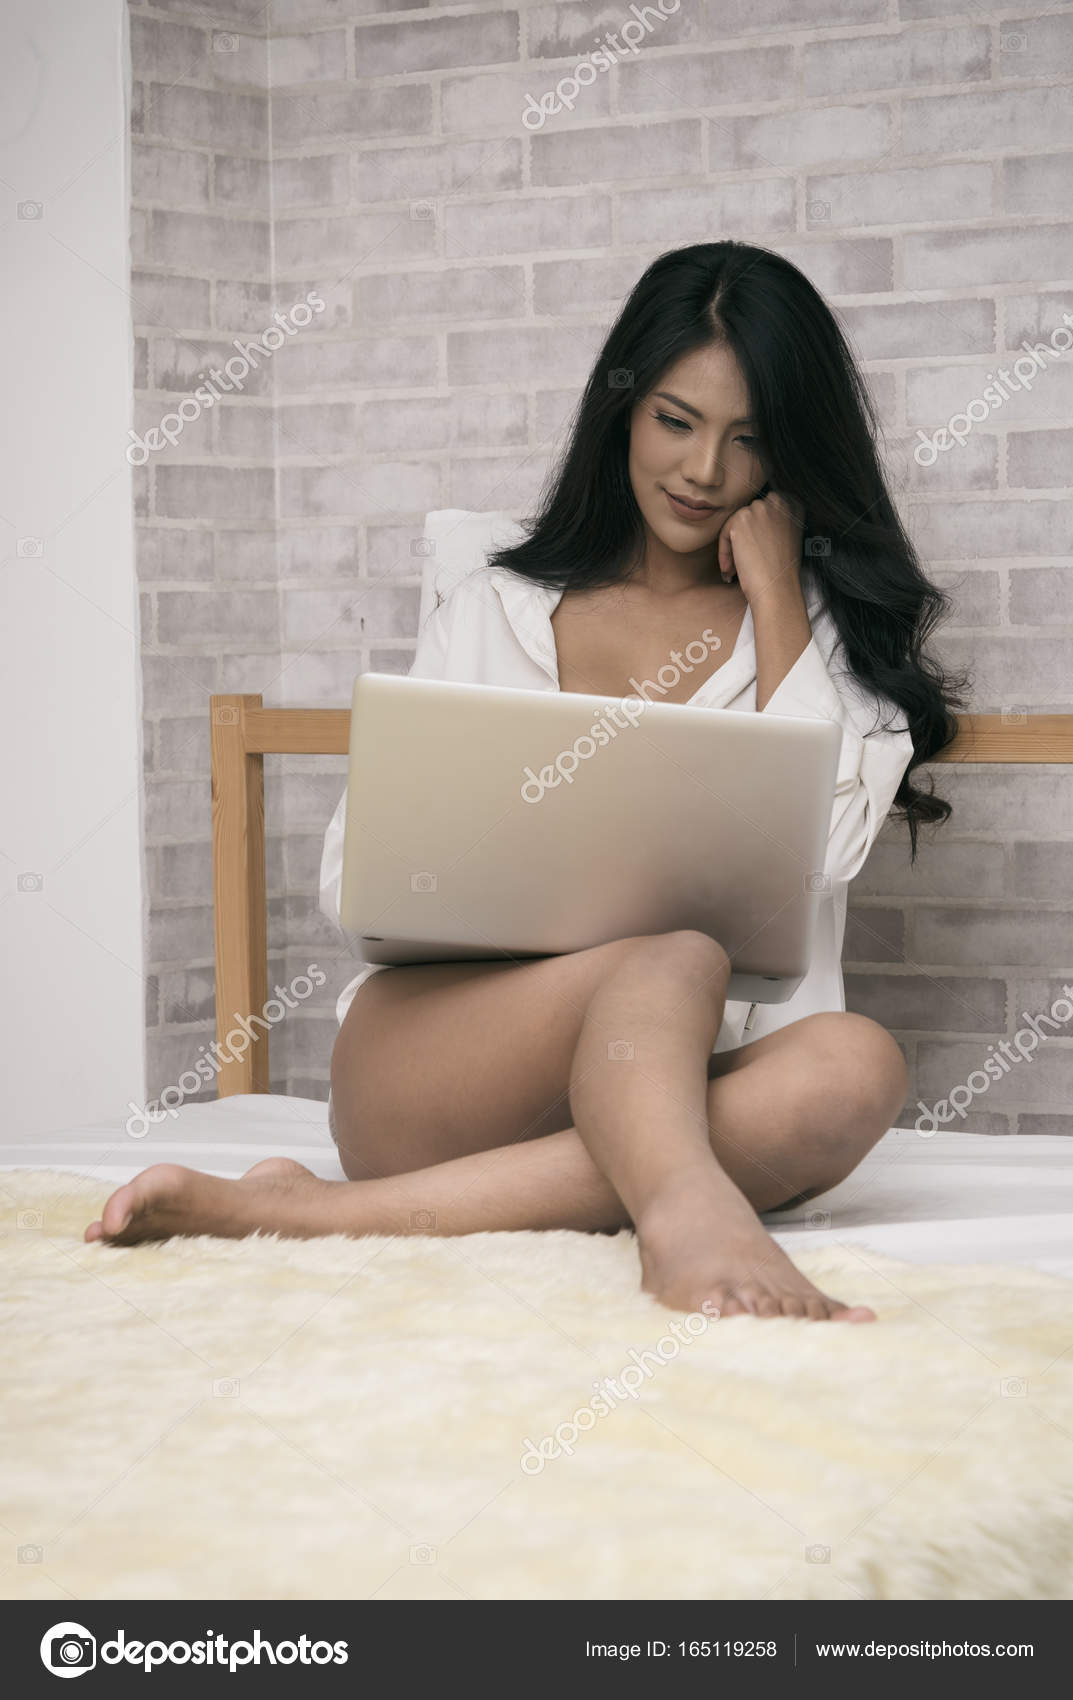 "Expresa tu momento "" in situ "" con una imagen - Página 20 Depositphotos_165119258-stock-photo-sexy-woman-with-laptop"